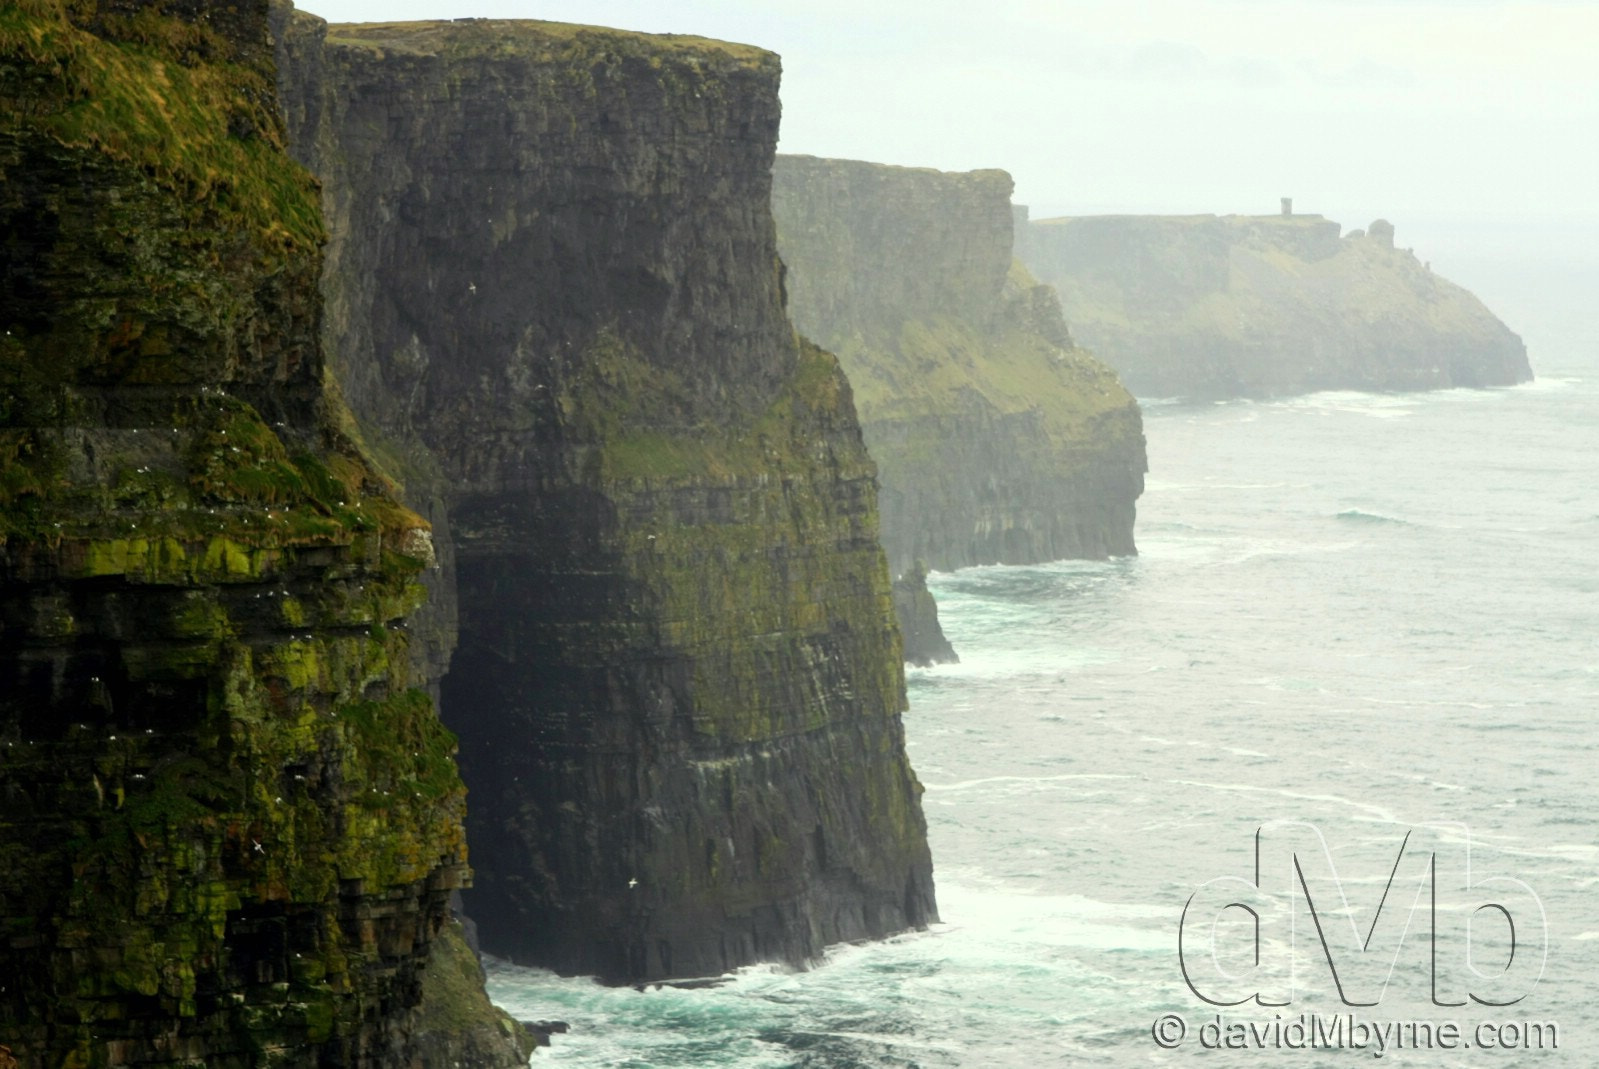 Photograph Cliffs of Moher, Ireland by davidMbyrne  on 500px